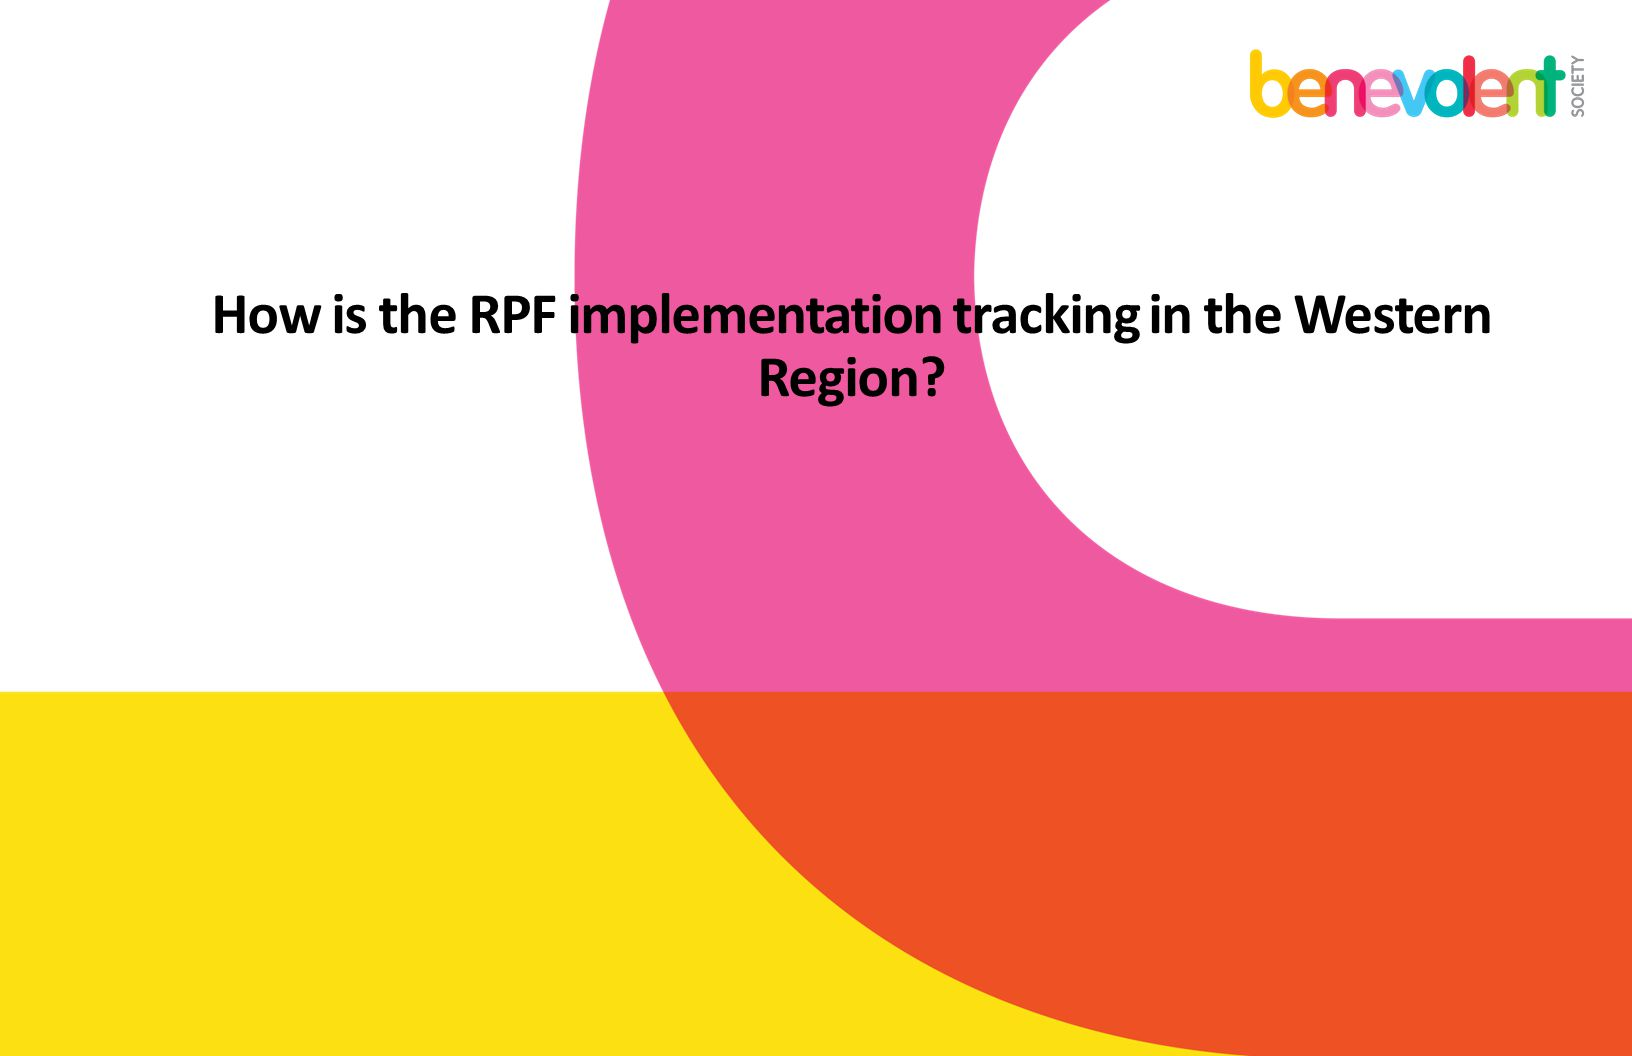 How is the RPF implementation tracking in the Western Region